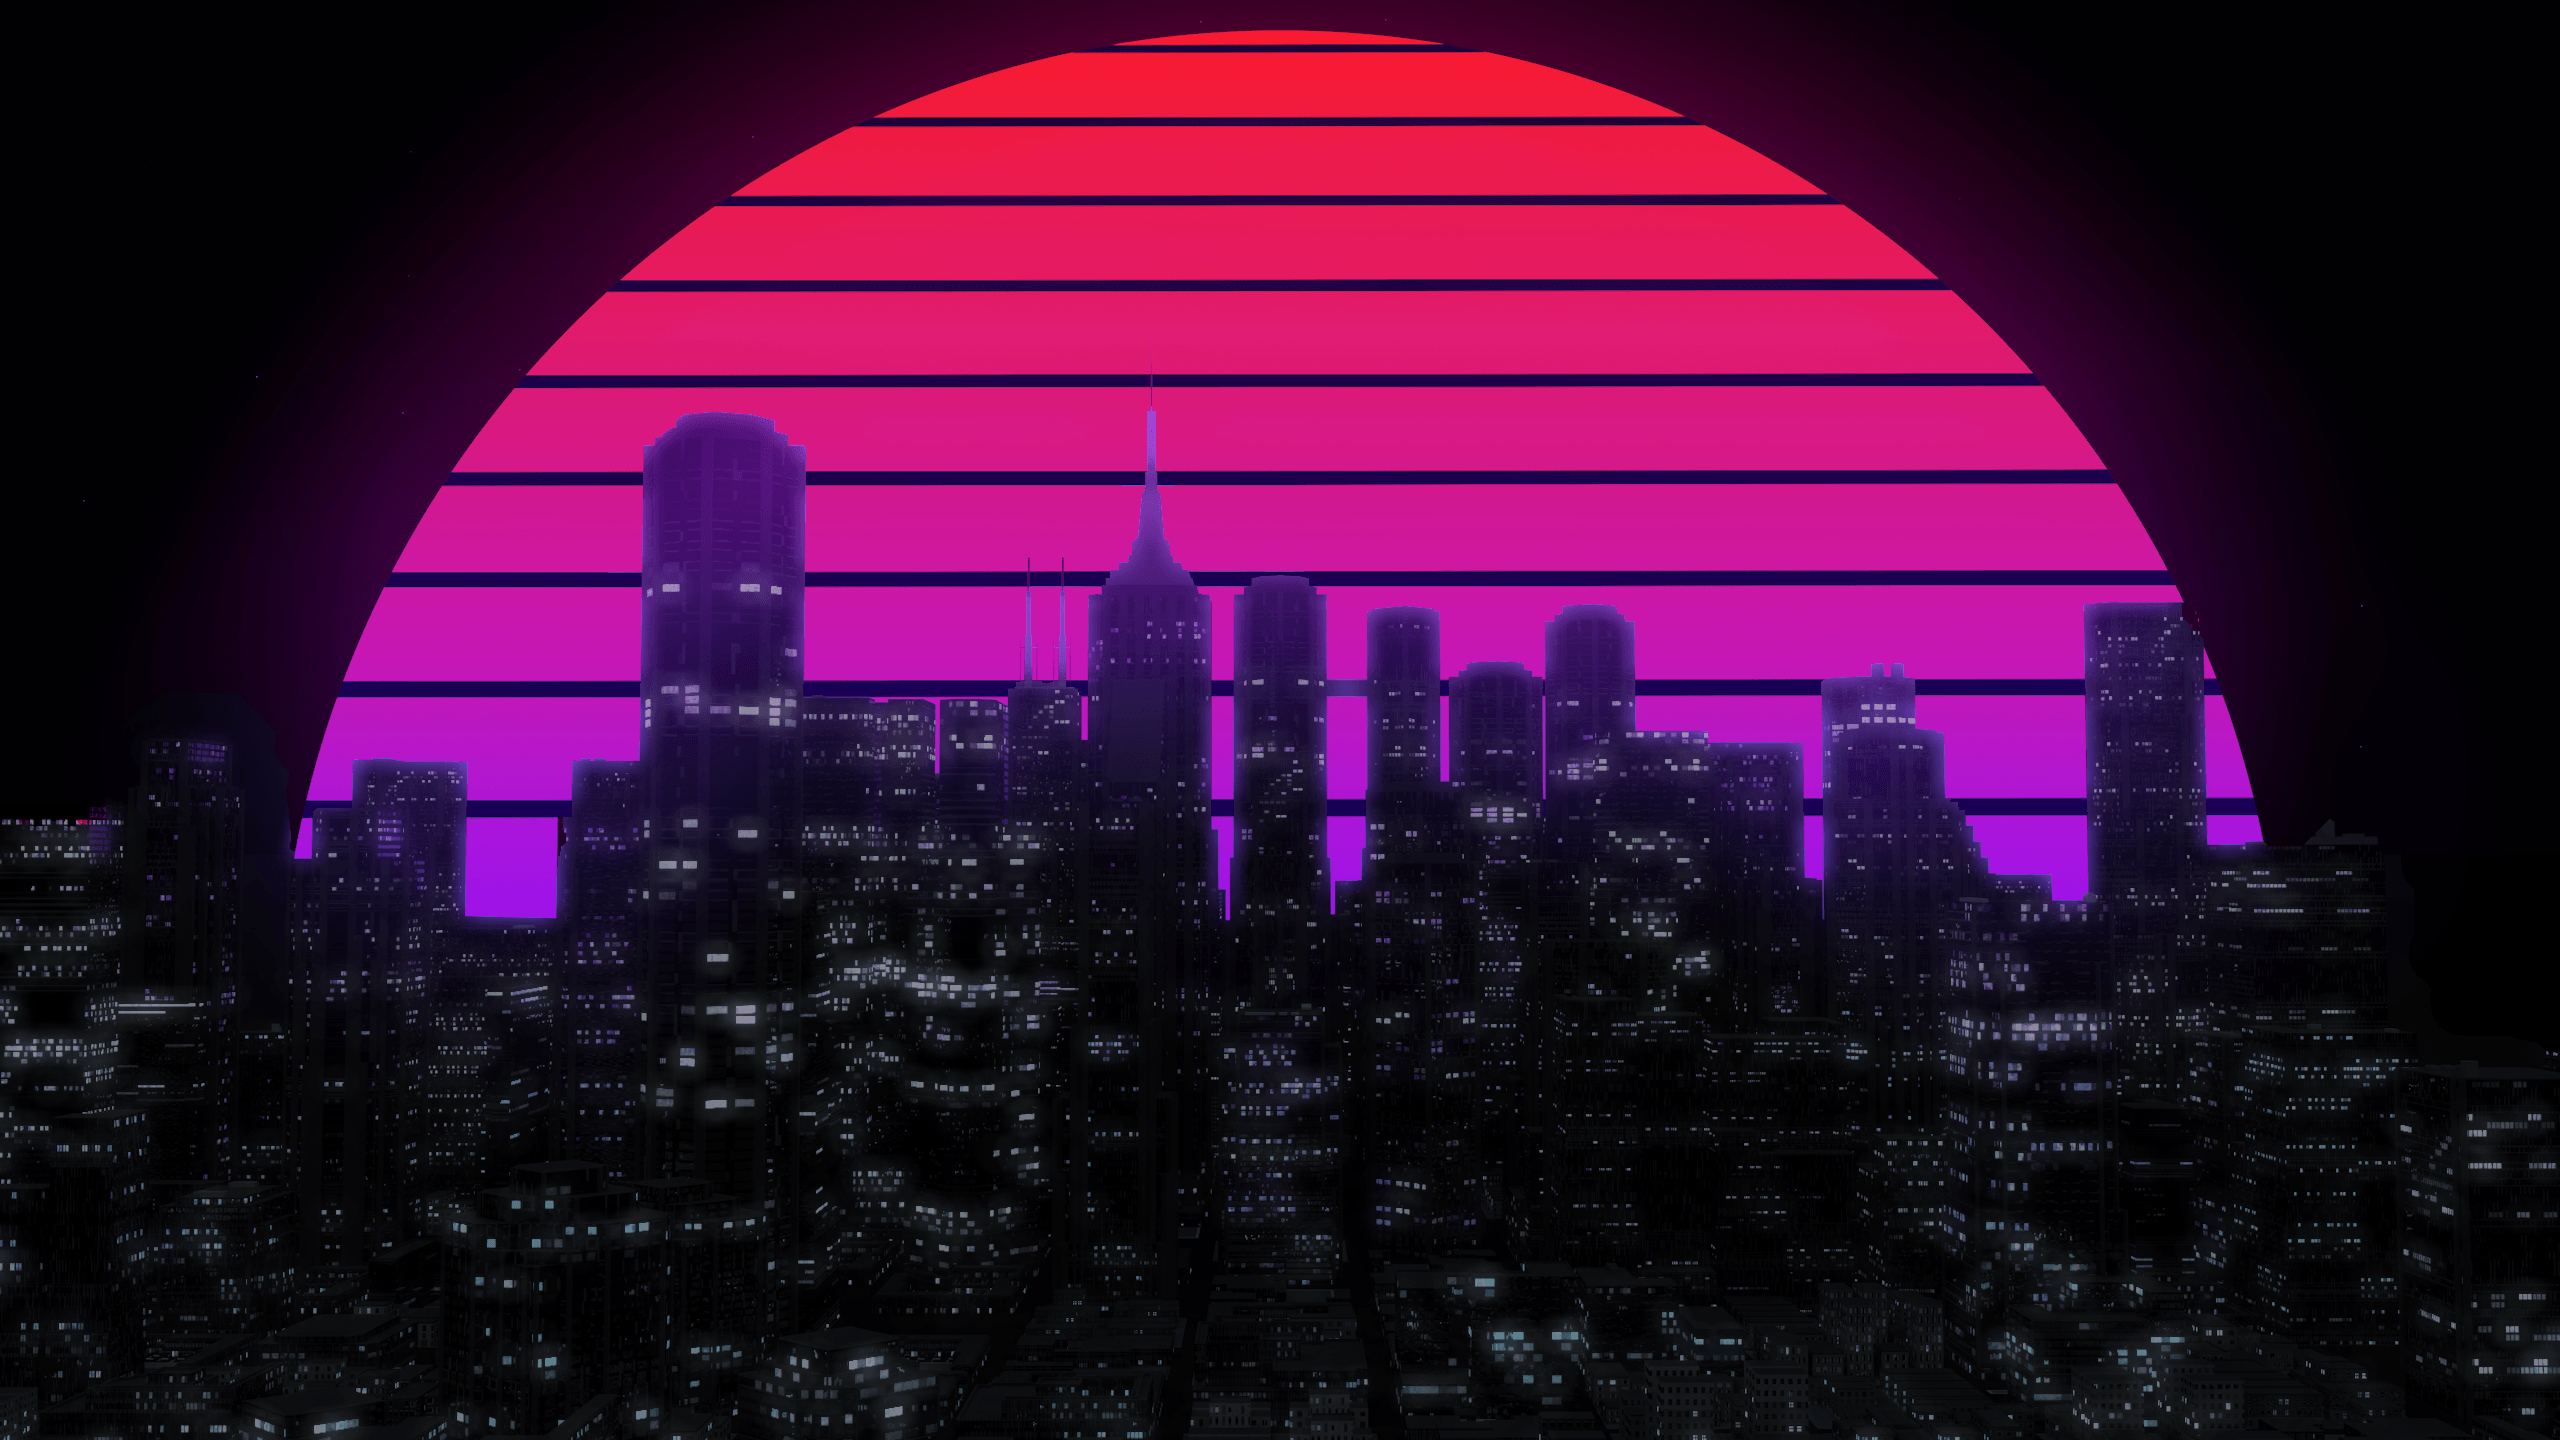 Aesthetic City Wallpapers Wallpaper Cave